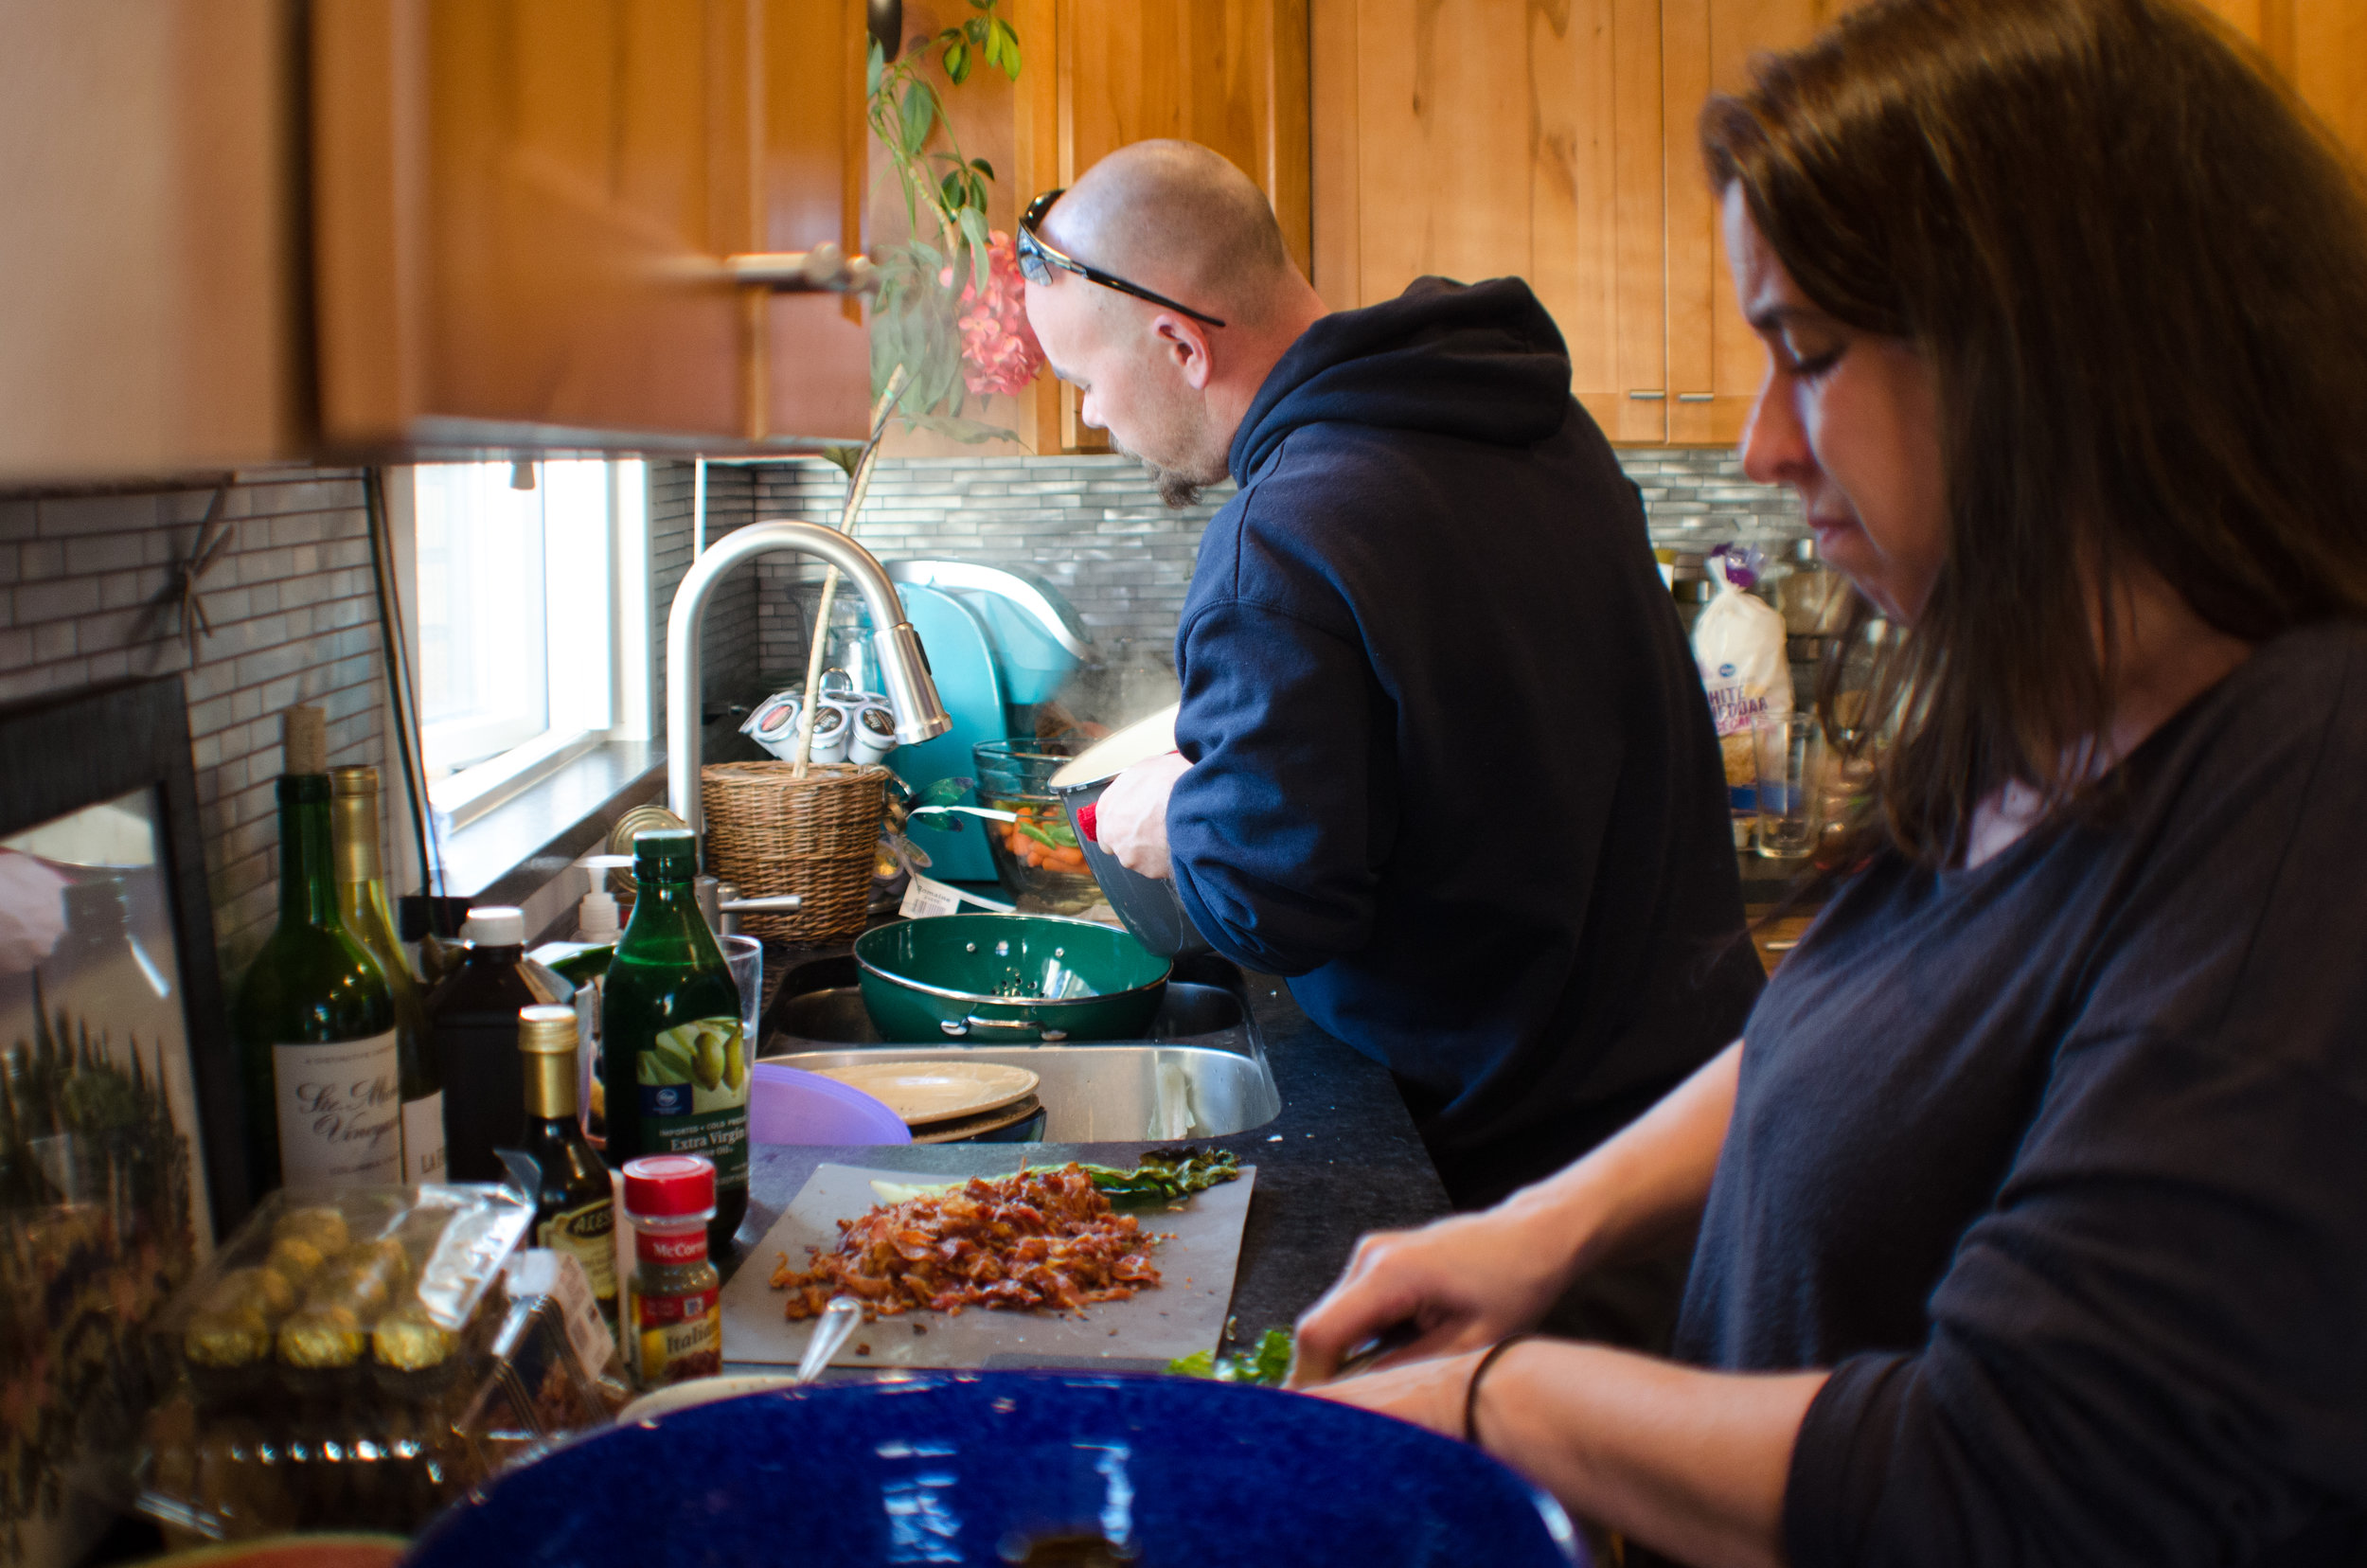 family funday, photography, love family cooking